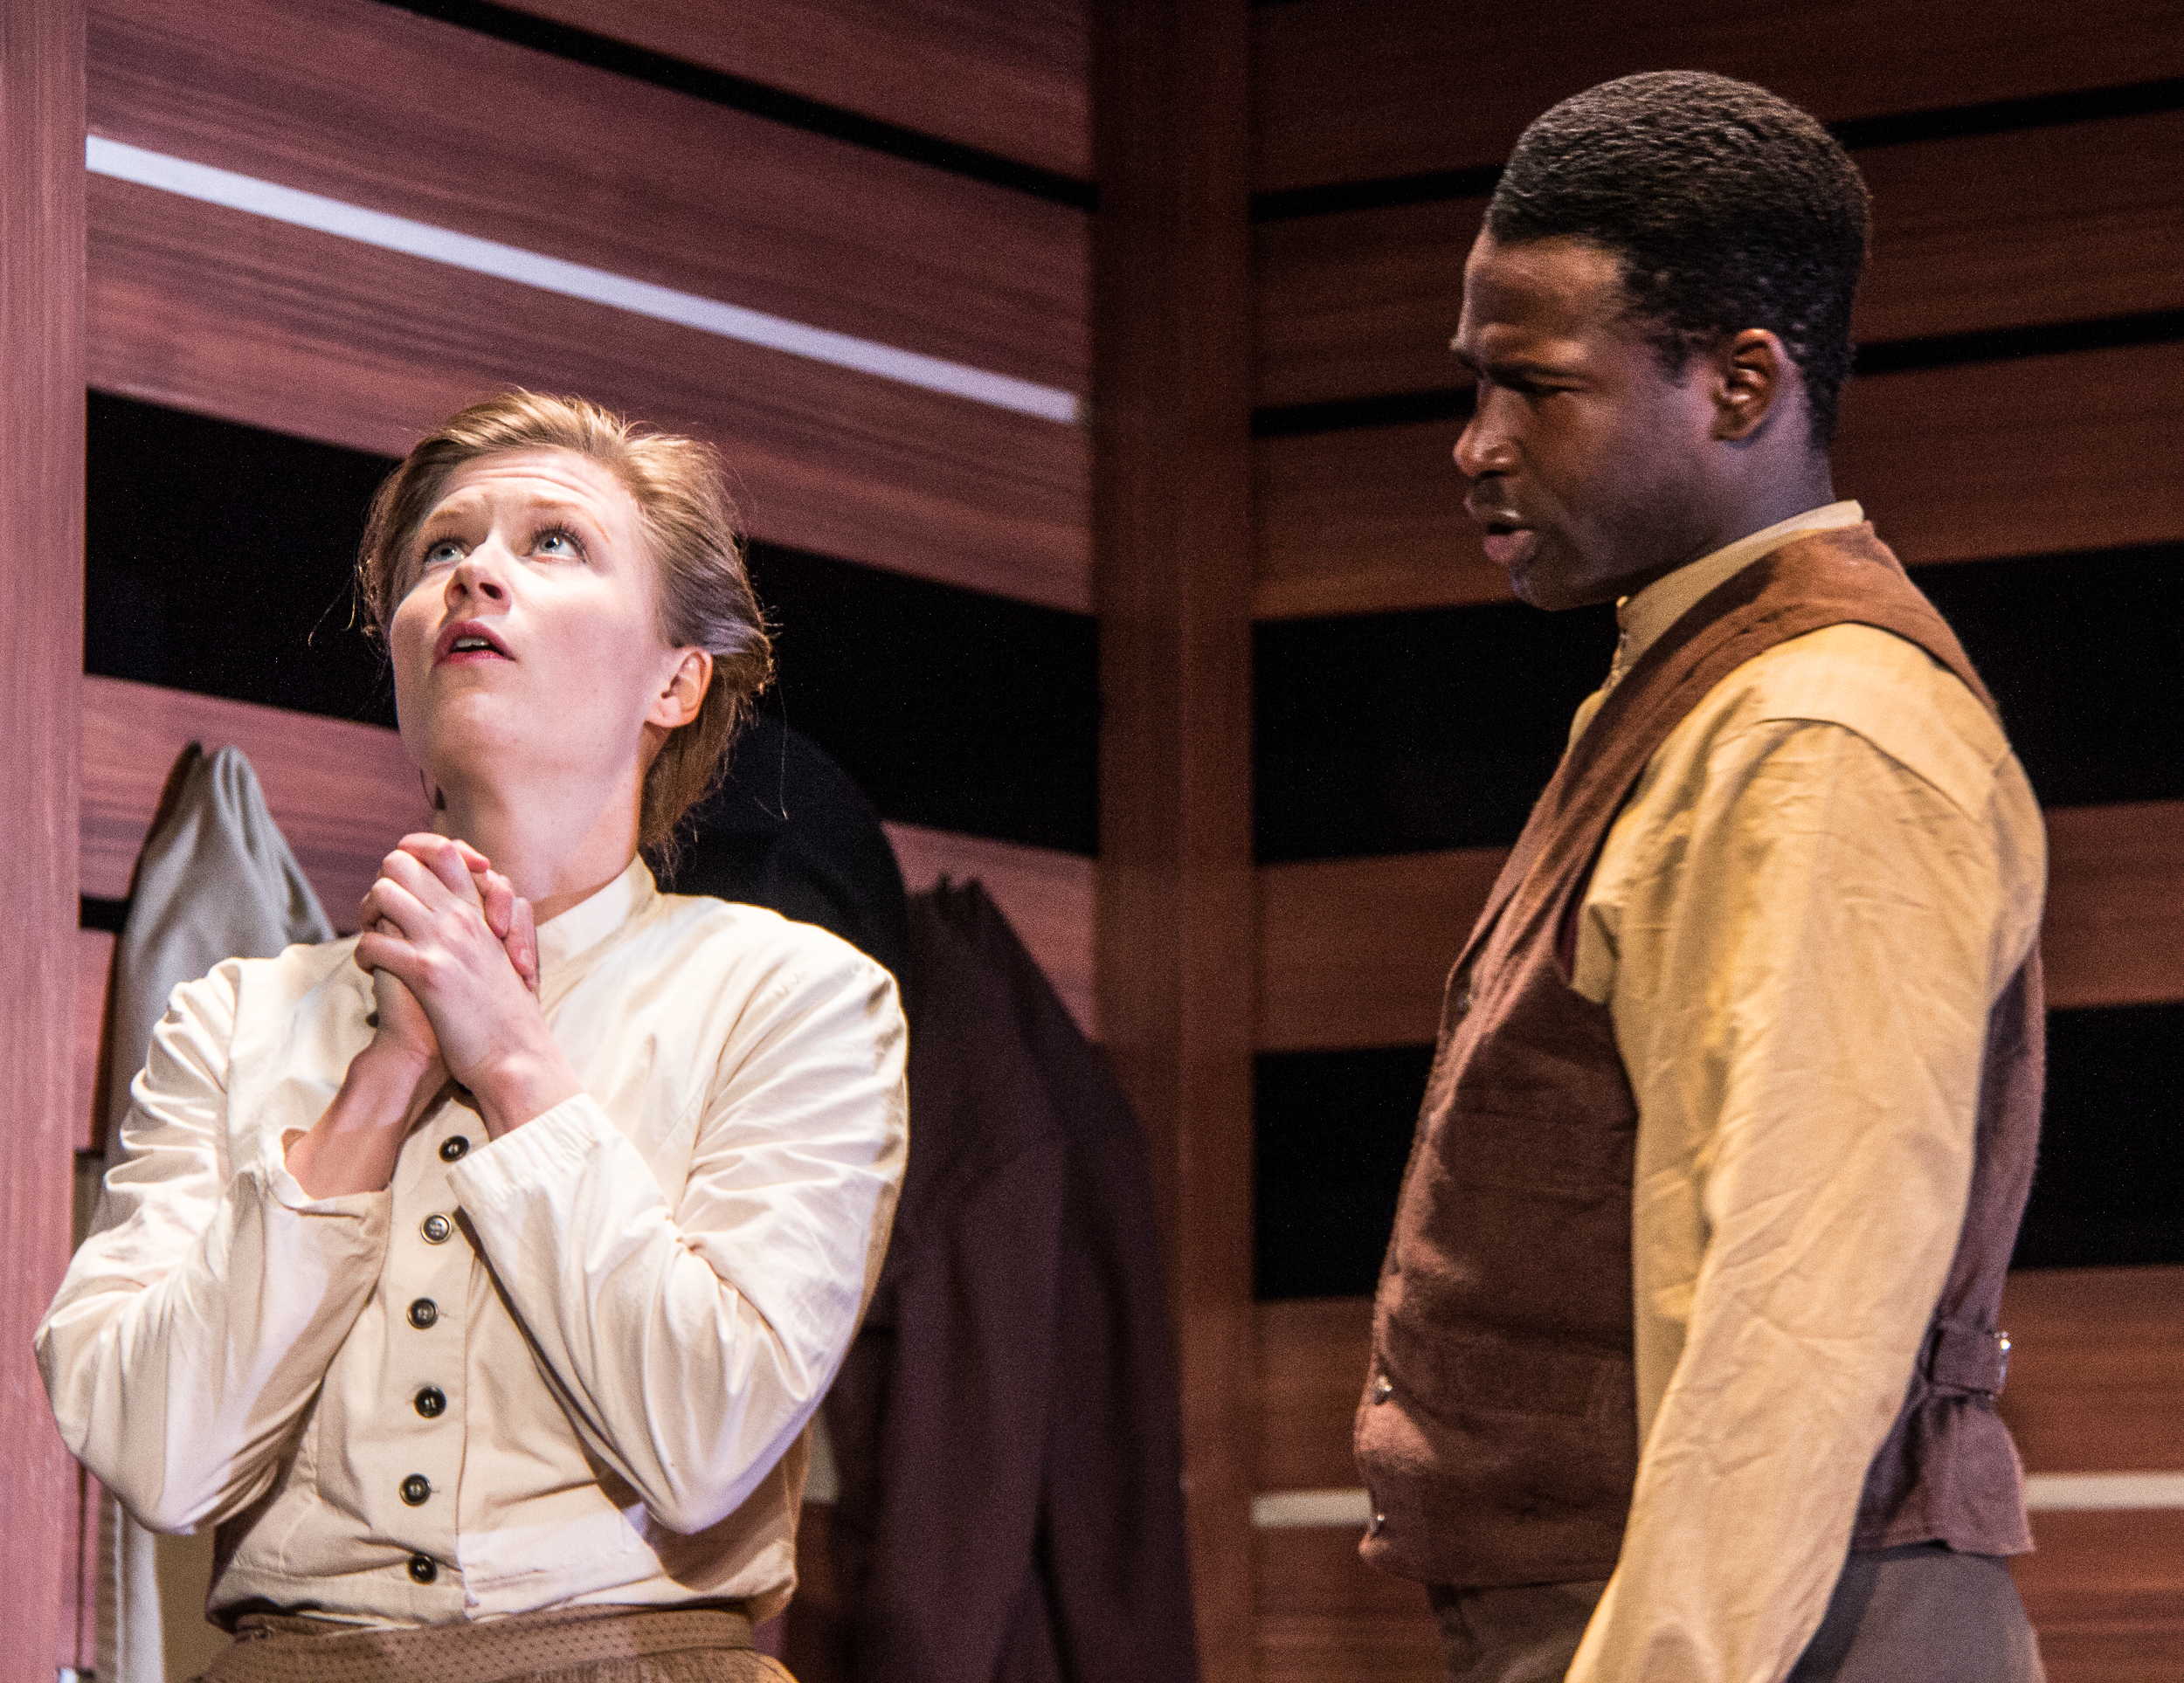 BWW Review: World Premiere of Kara Lee Corthron's LISTEN FOR THE LIGHT at Know Theatre Of Cincinnati